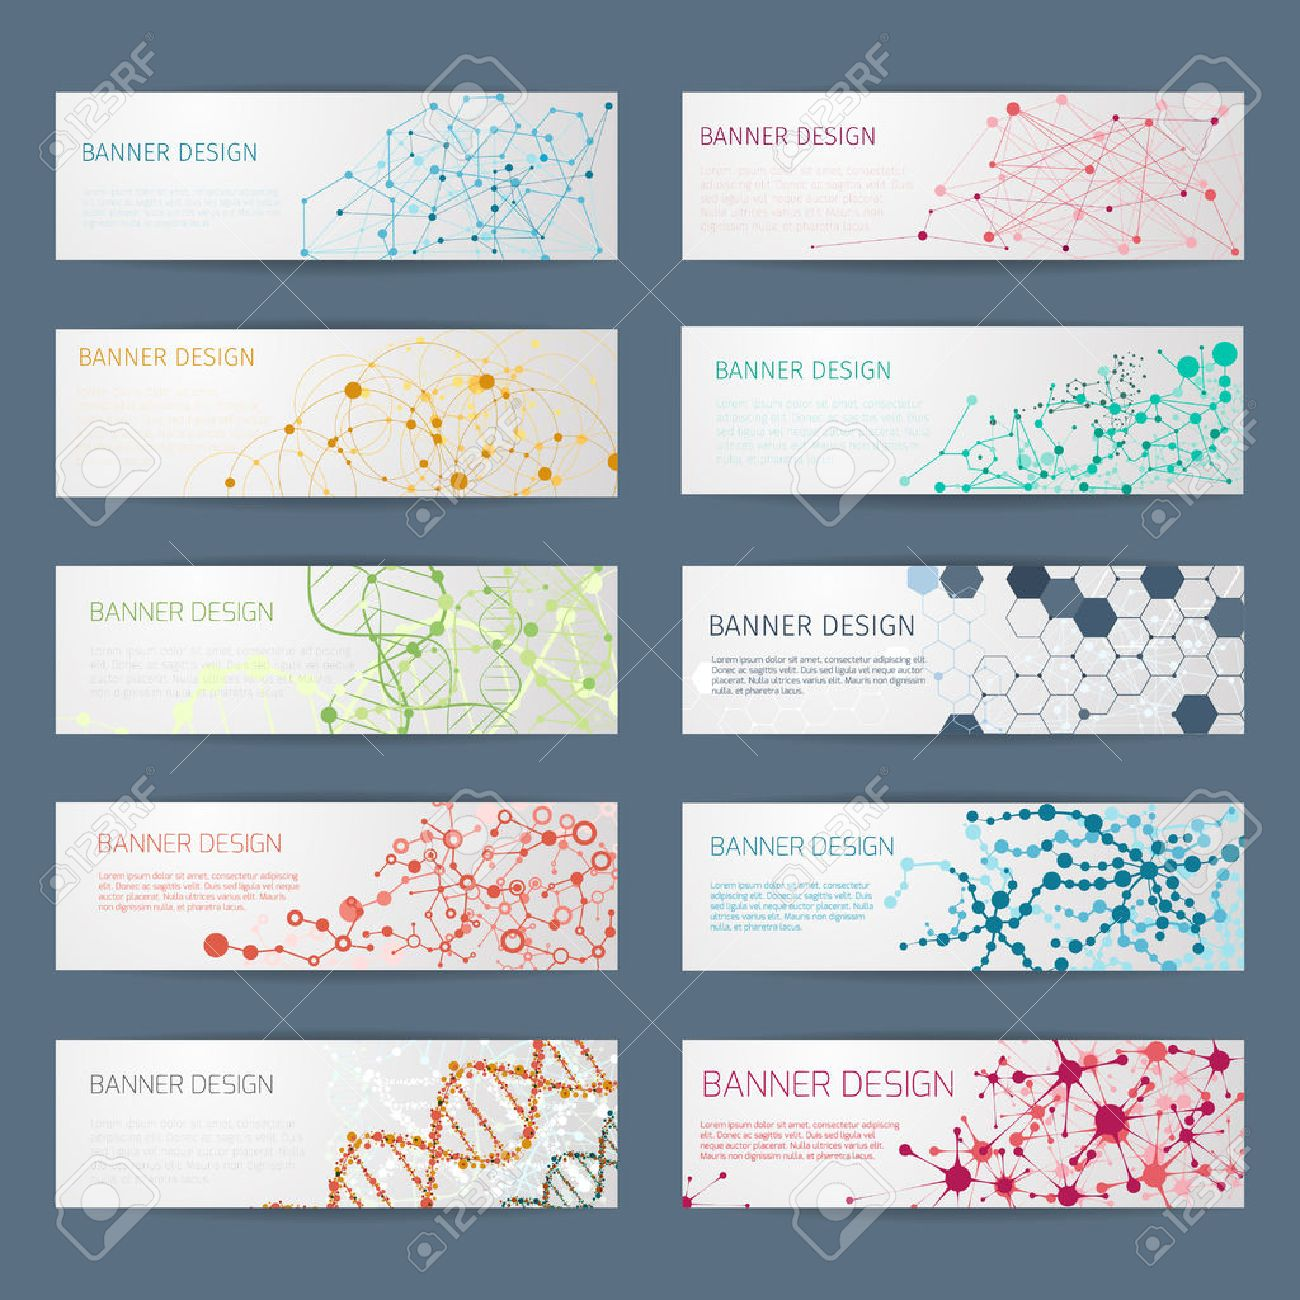 Poster design vector - Abstract Geometric Dna Vector Banners Science Poster Design Structure Chemistry Connect Nuclear Atom